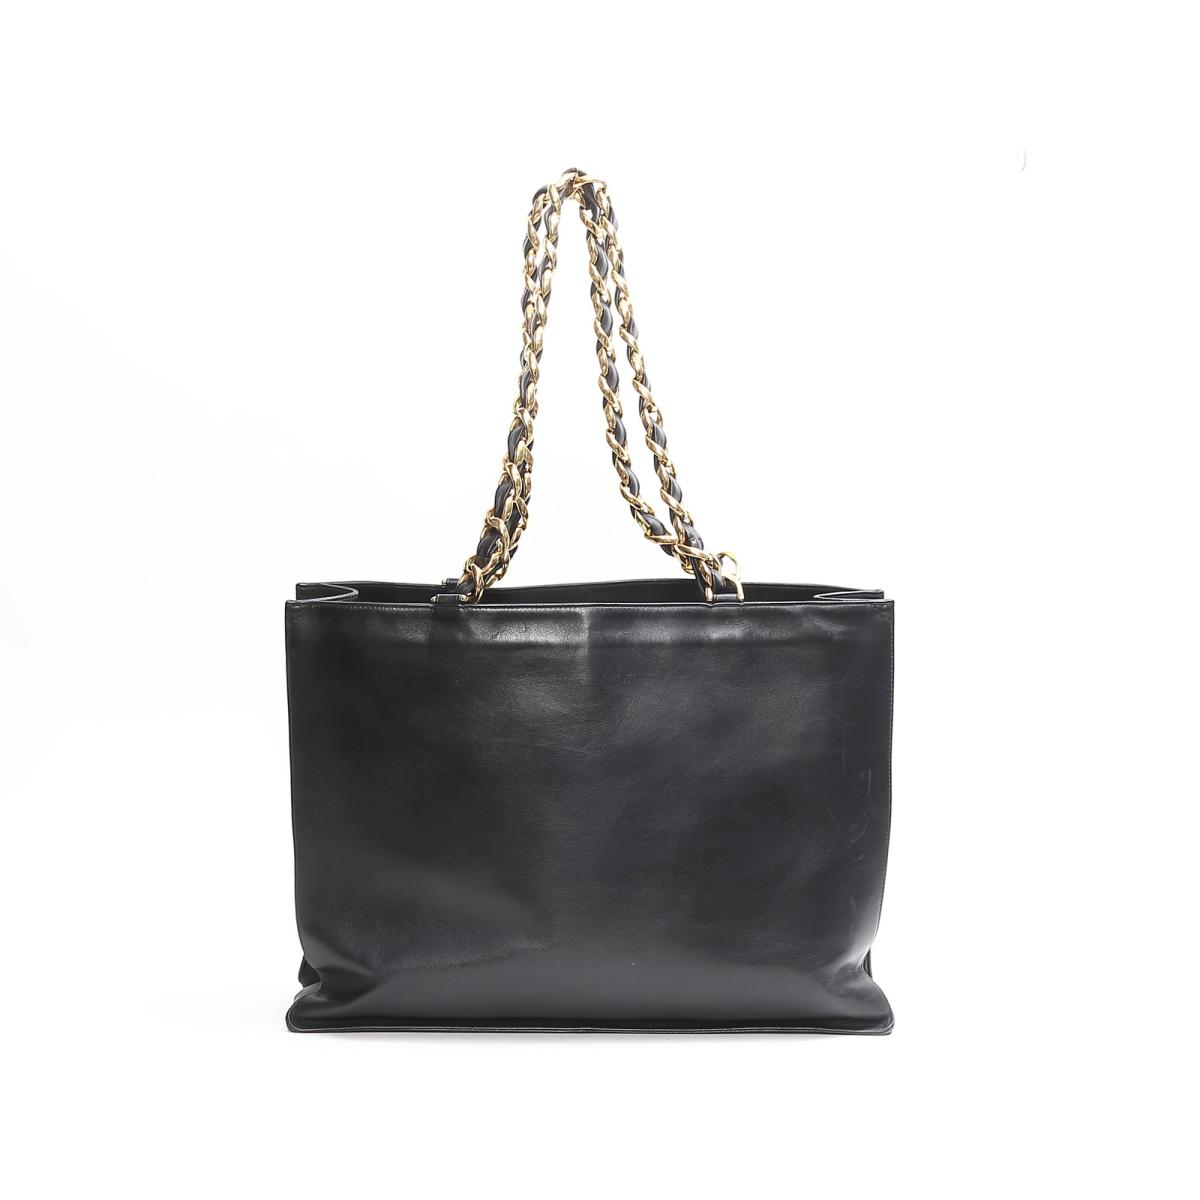 0b3f2297e8ca BRANDOFF  (Free shipping) Auth CHANEL Chain Tote Bag leather Black ...